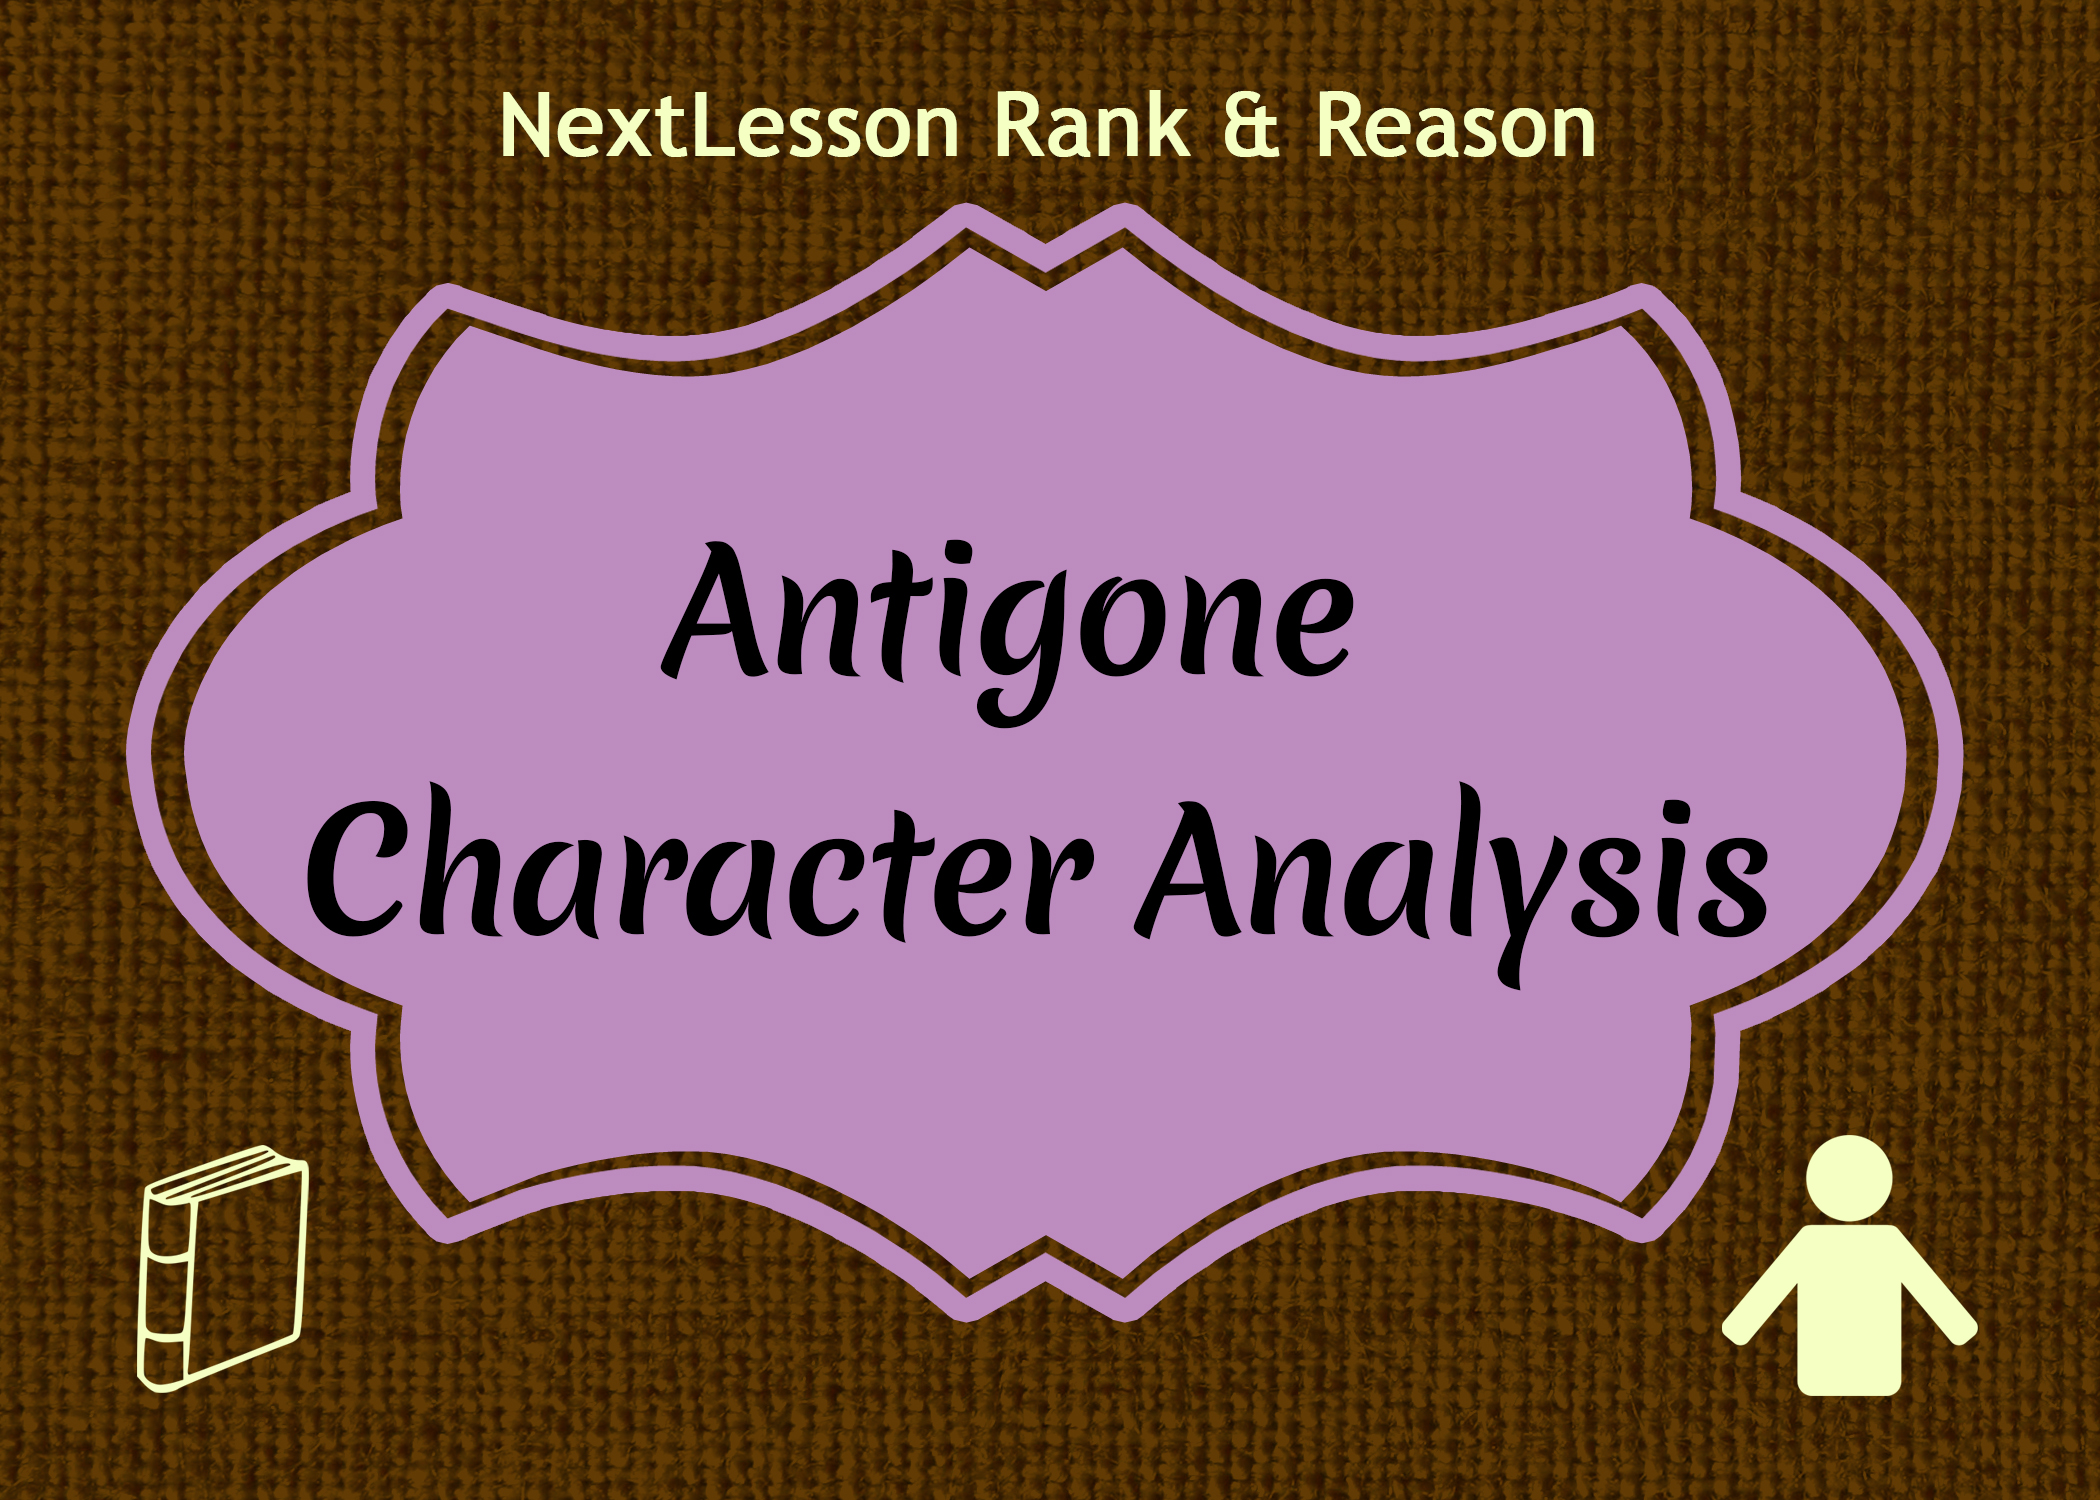 character analysis essay on antigone writefiction web fc com character analysis essay on antigone